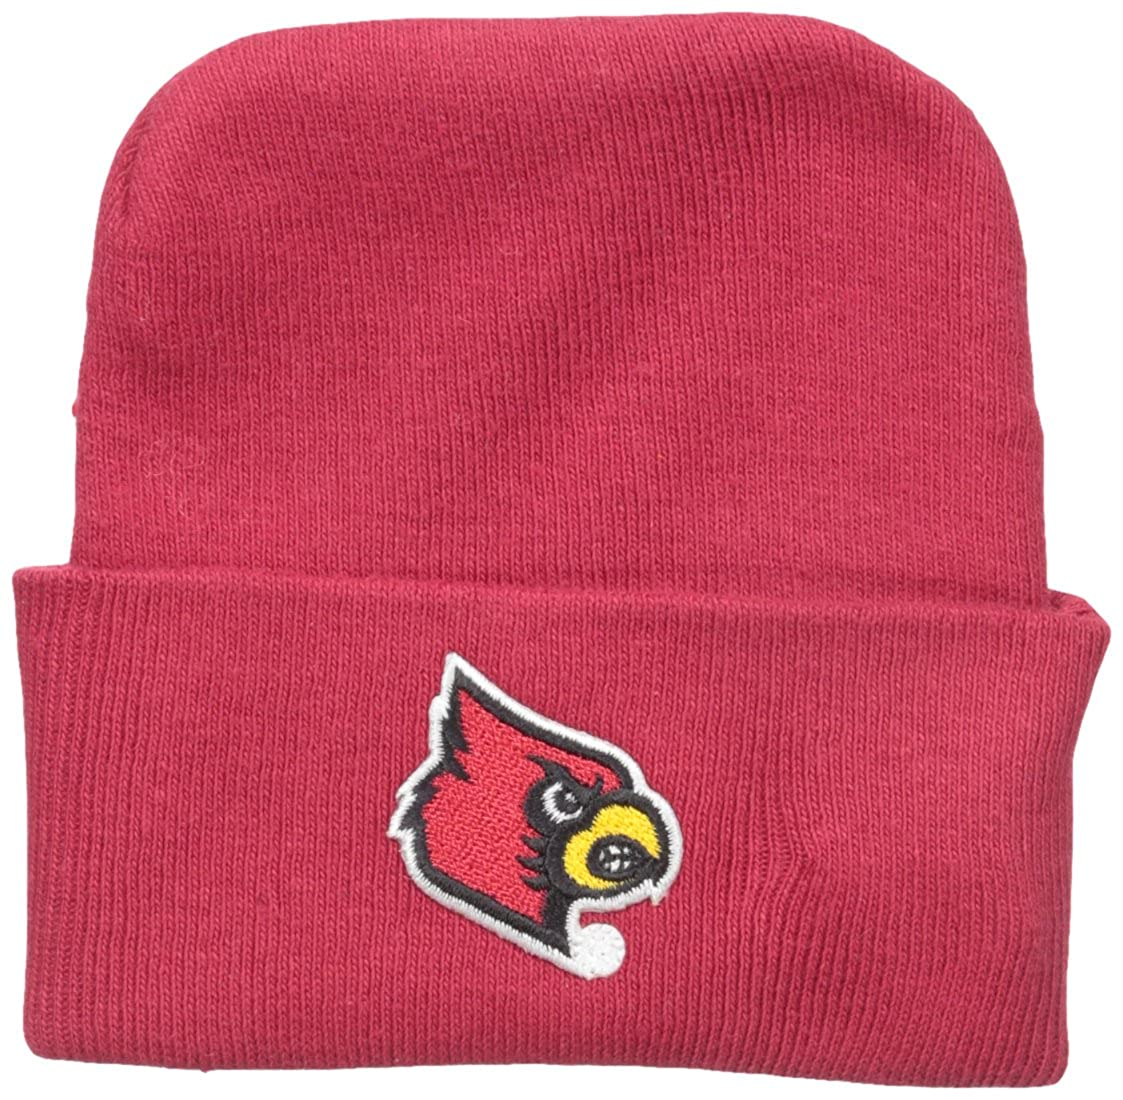 Two Feet Ahead NCAA Louisville Cardinals Infant Knit Cap New Born Red